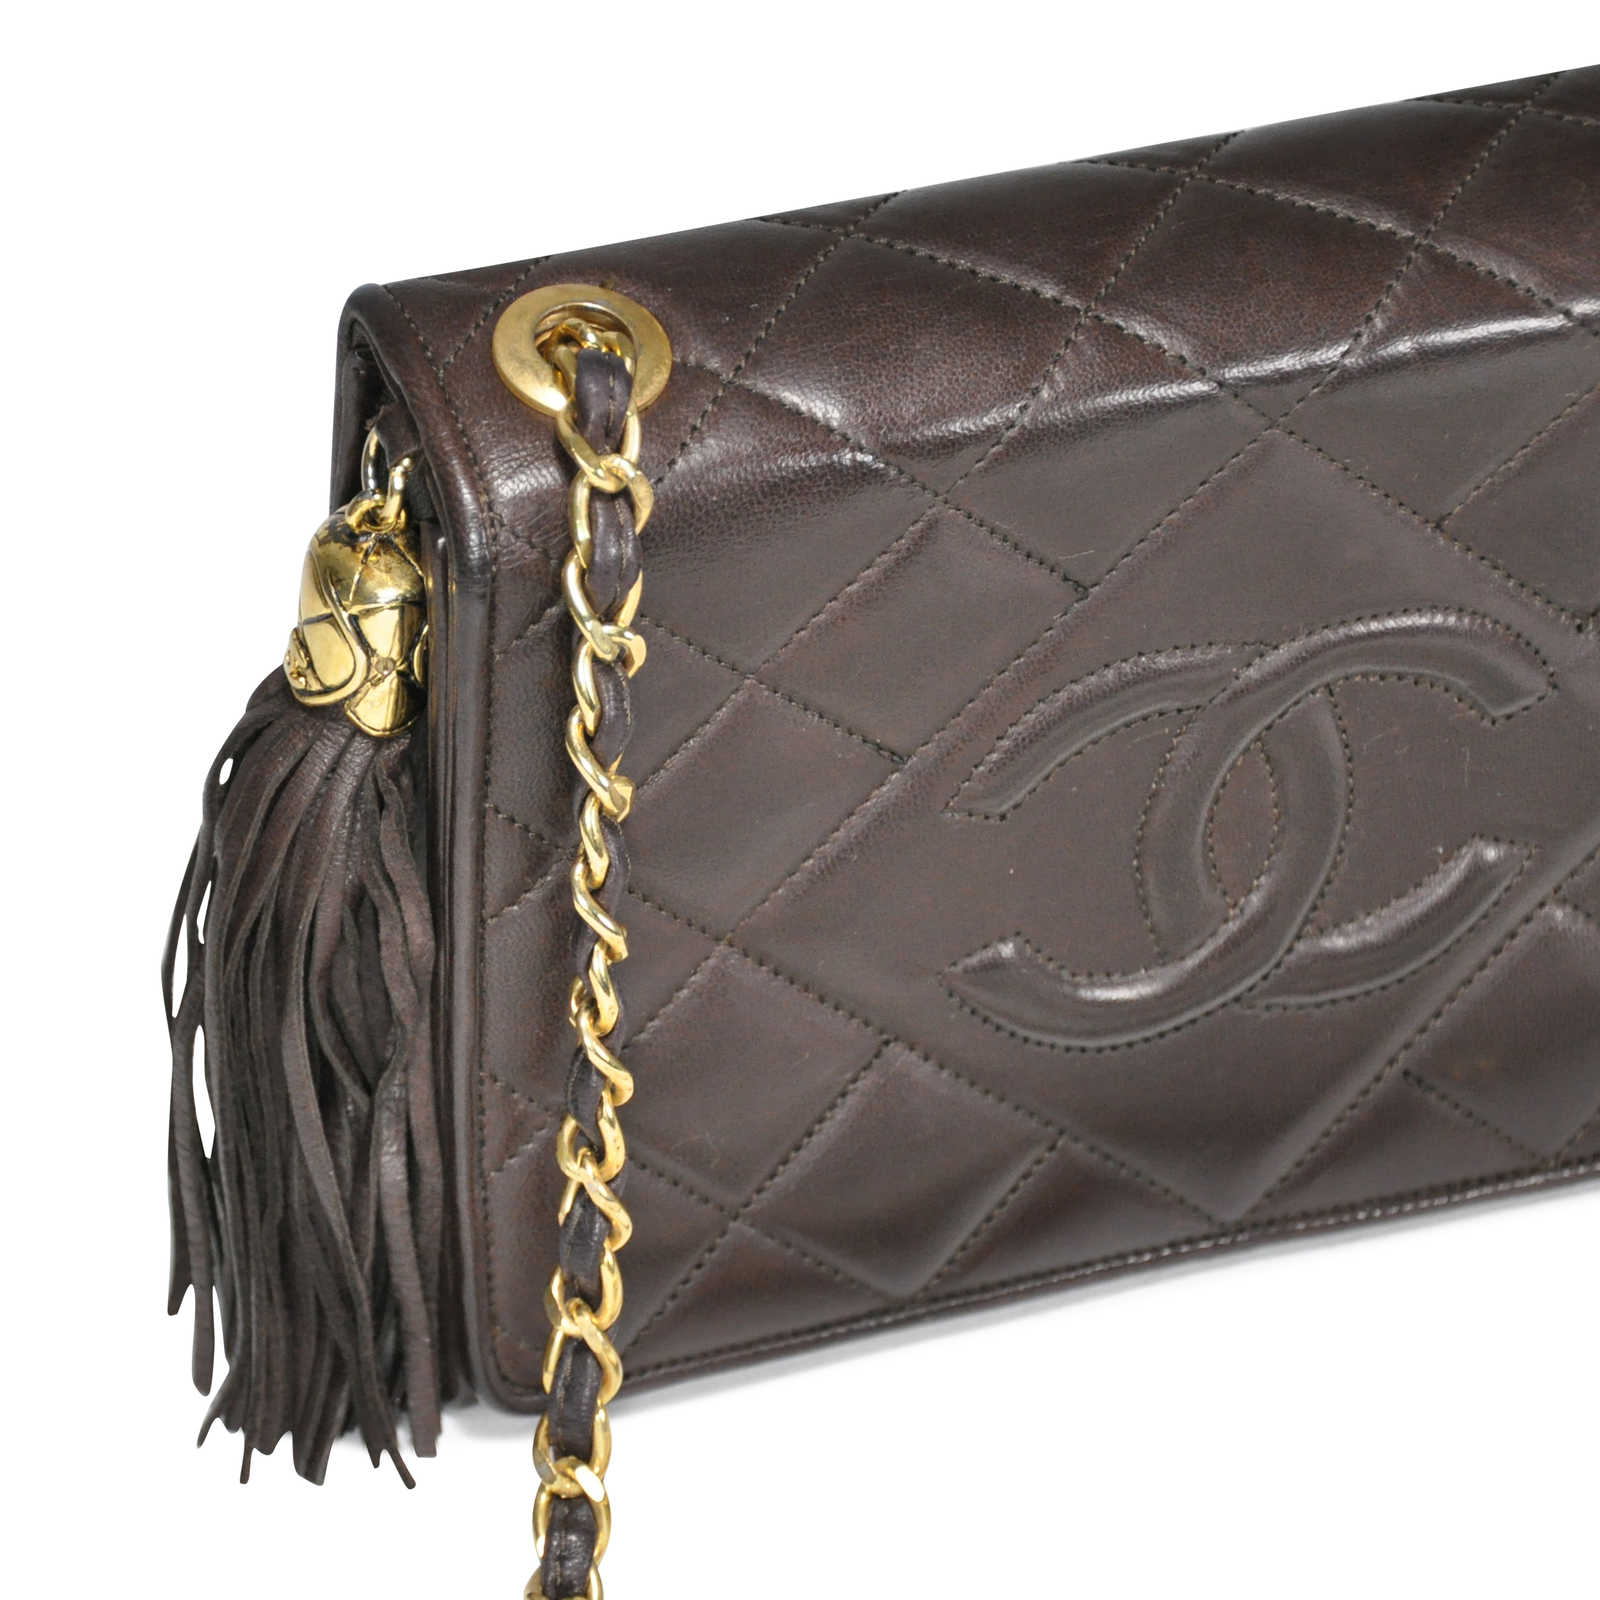 731b4cf04c16 ... Authentic Vintage Chanel Quilted Lambskin Tassel Flap Bag  (PSS-053-00012) ...